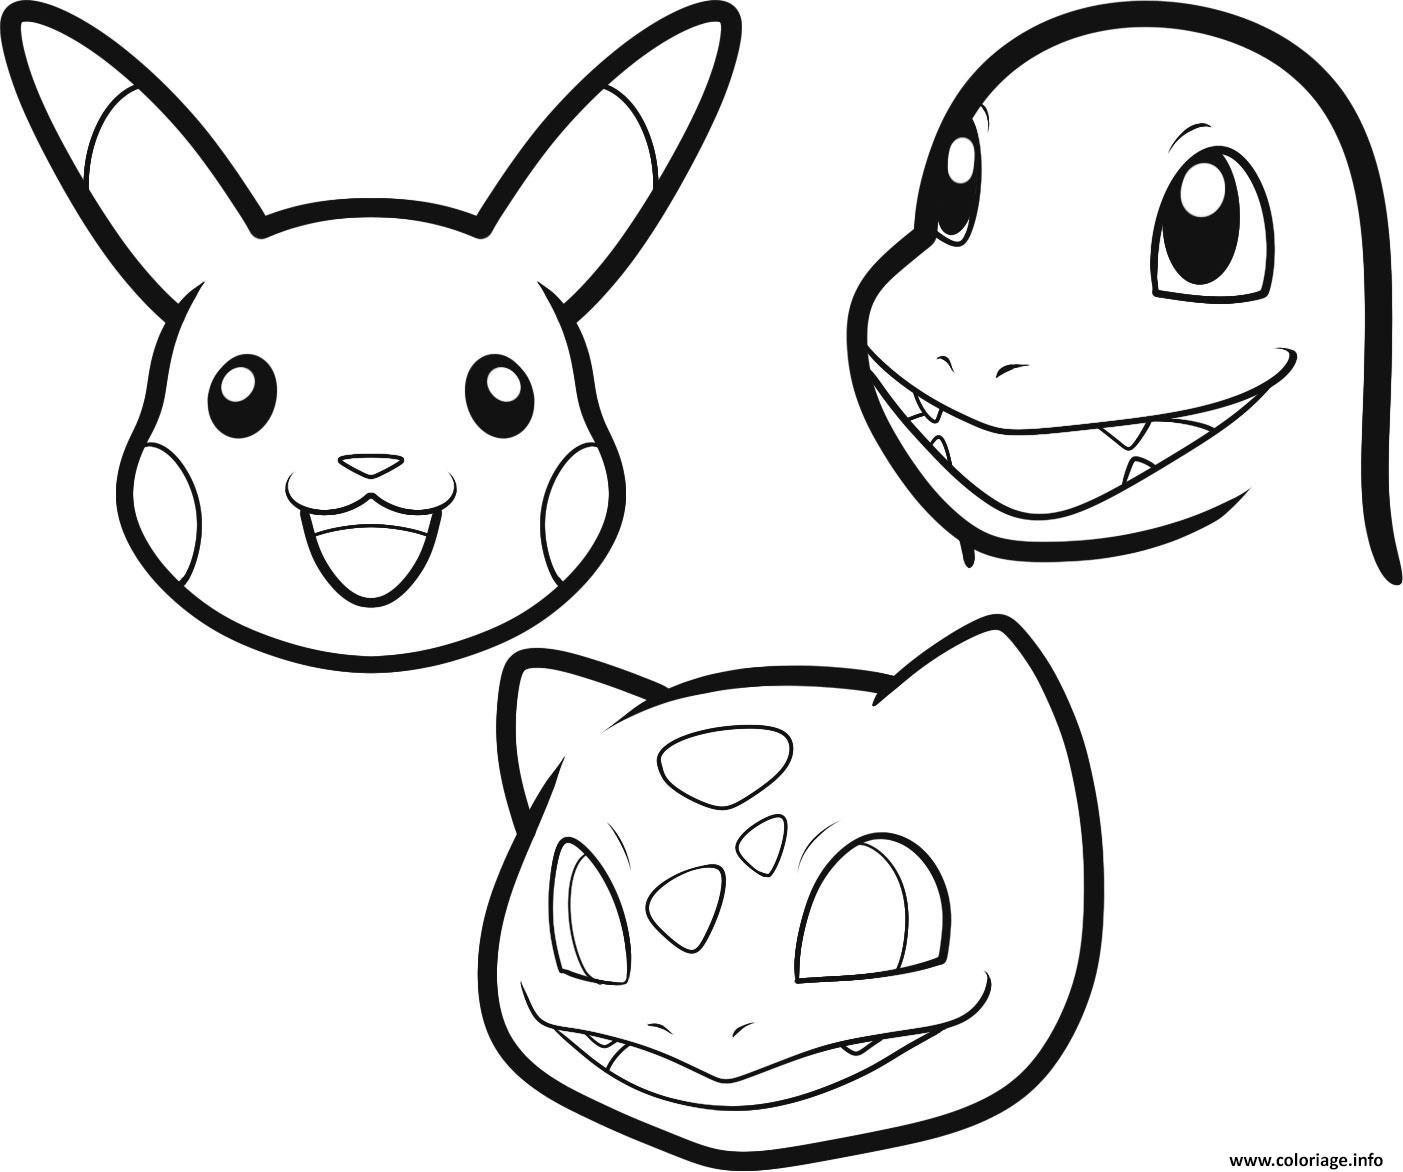 Coloriage pokemon facile 137 dessin - Modele dessin pokemon ...